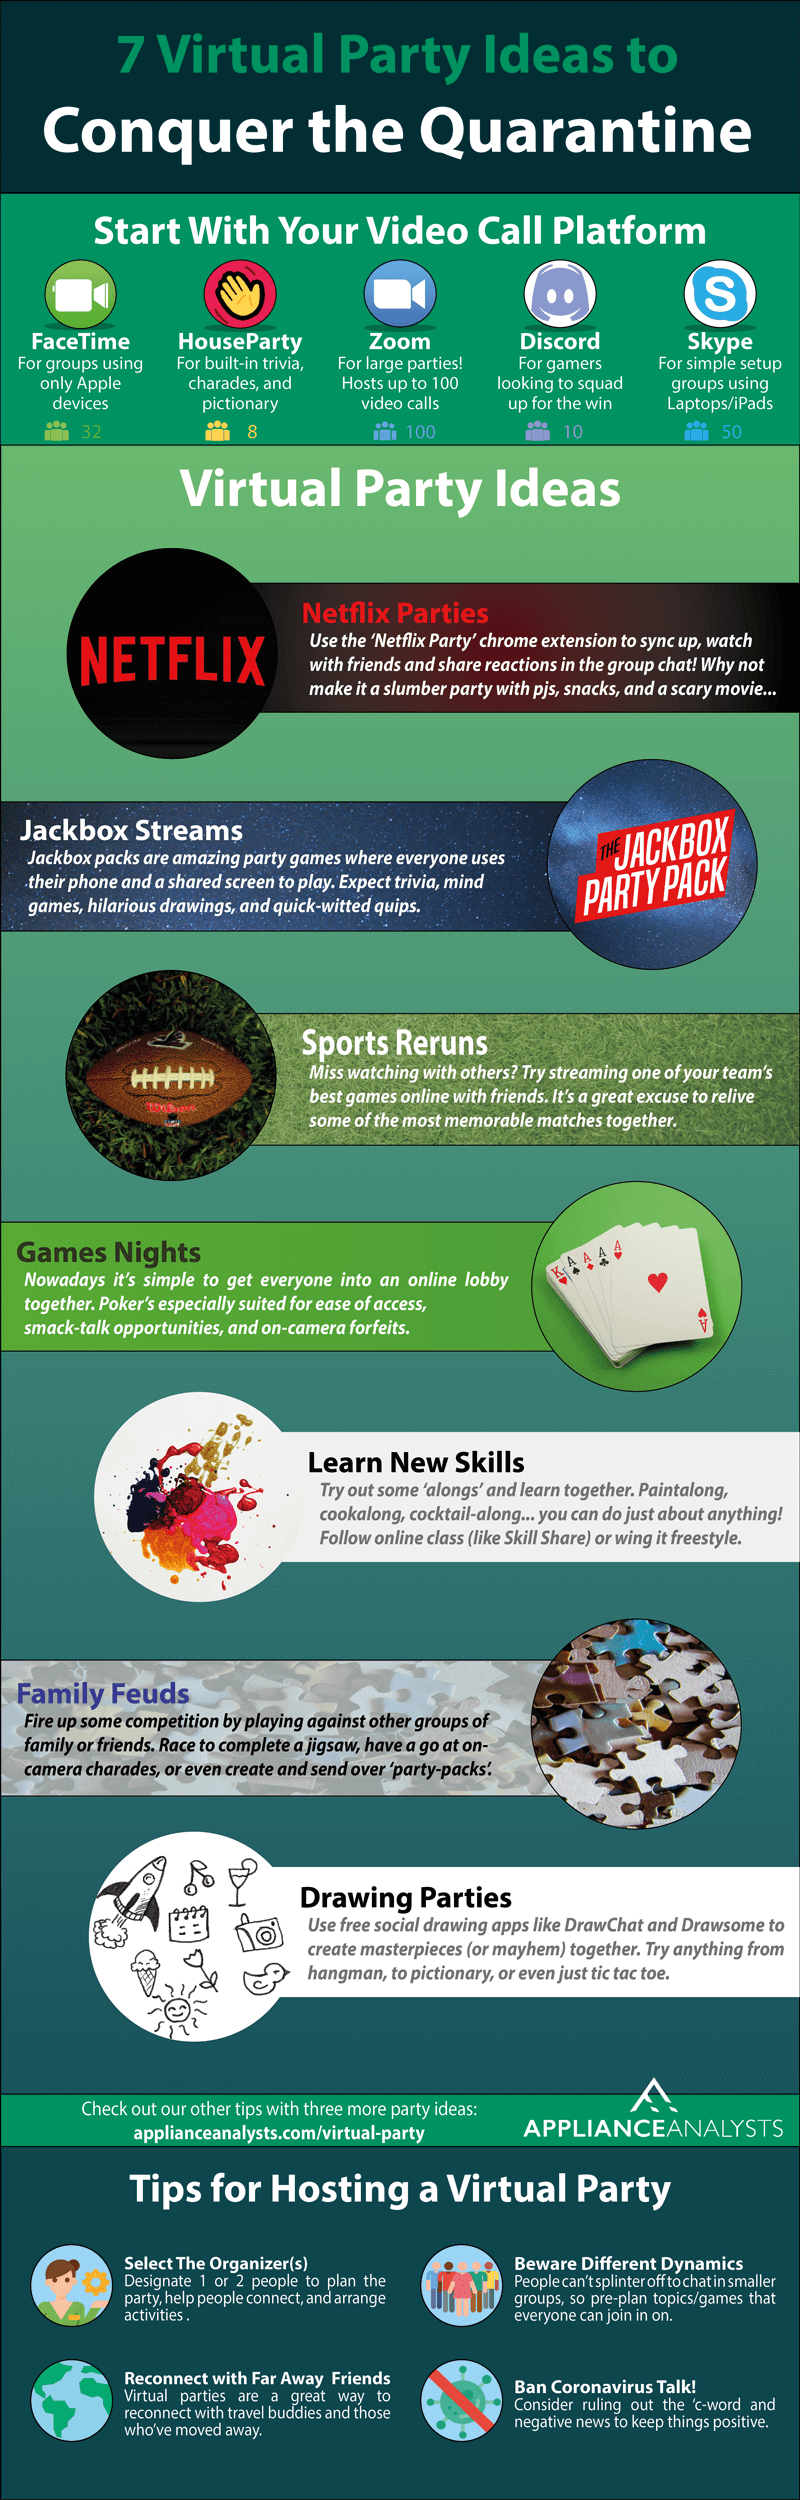 Virtual Party Ideas to Conquer The Quarantine Infographic